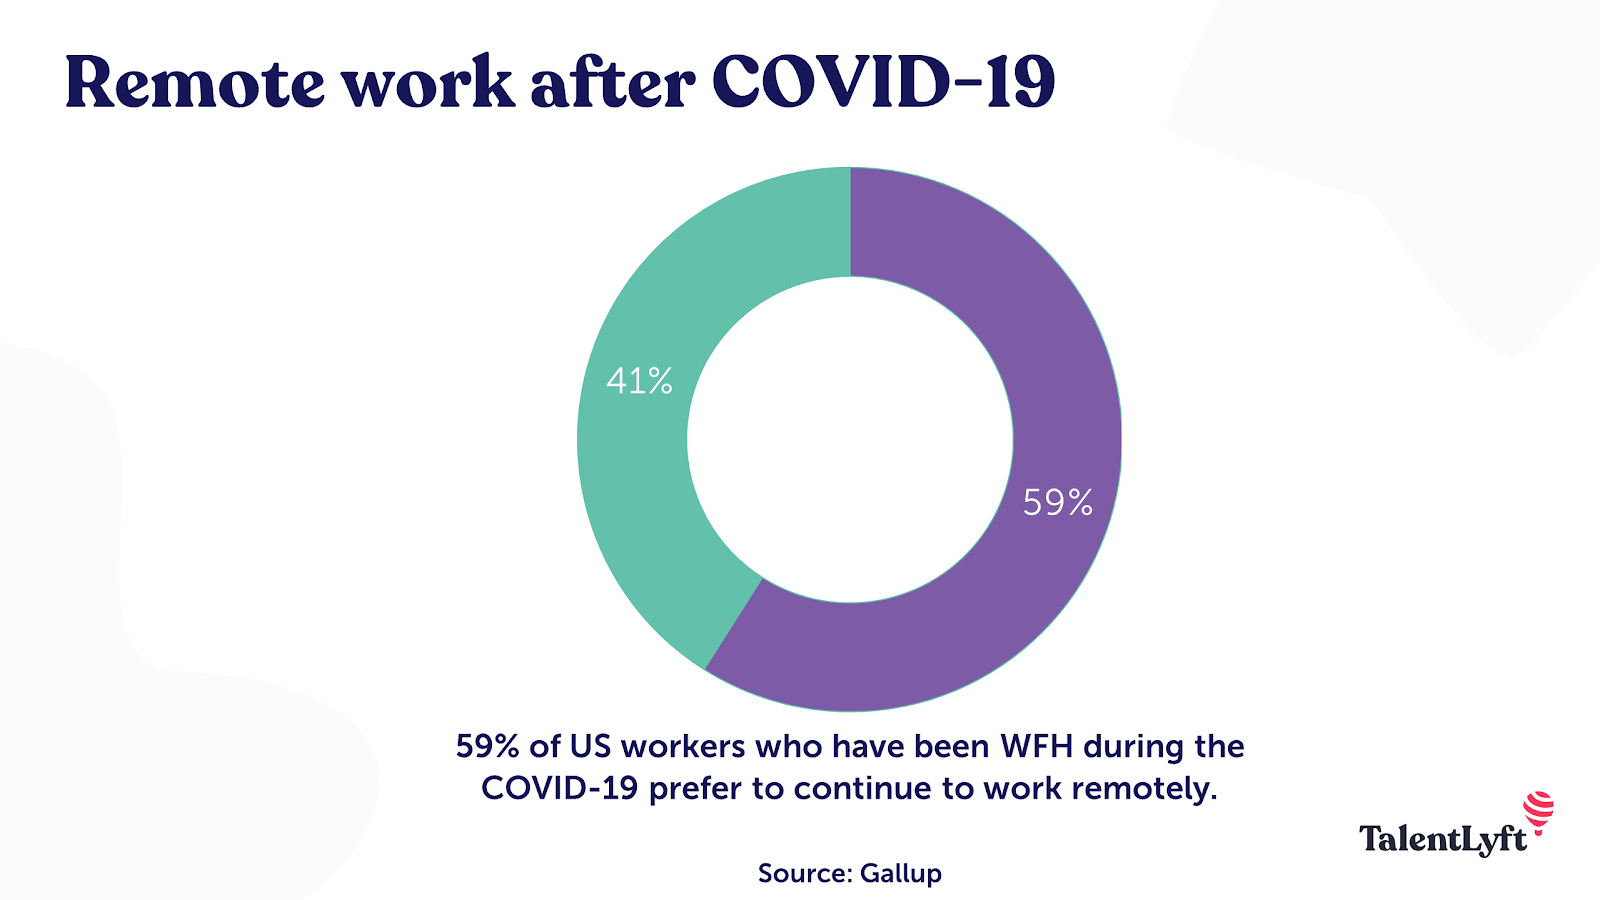 Remote work after COVID-19